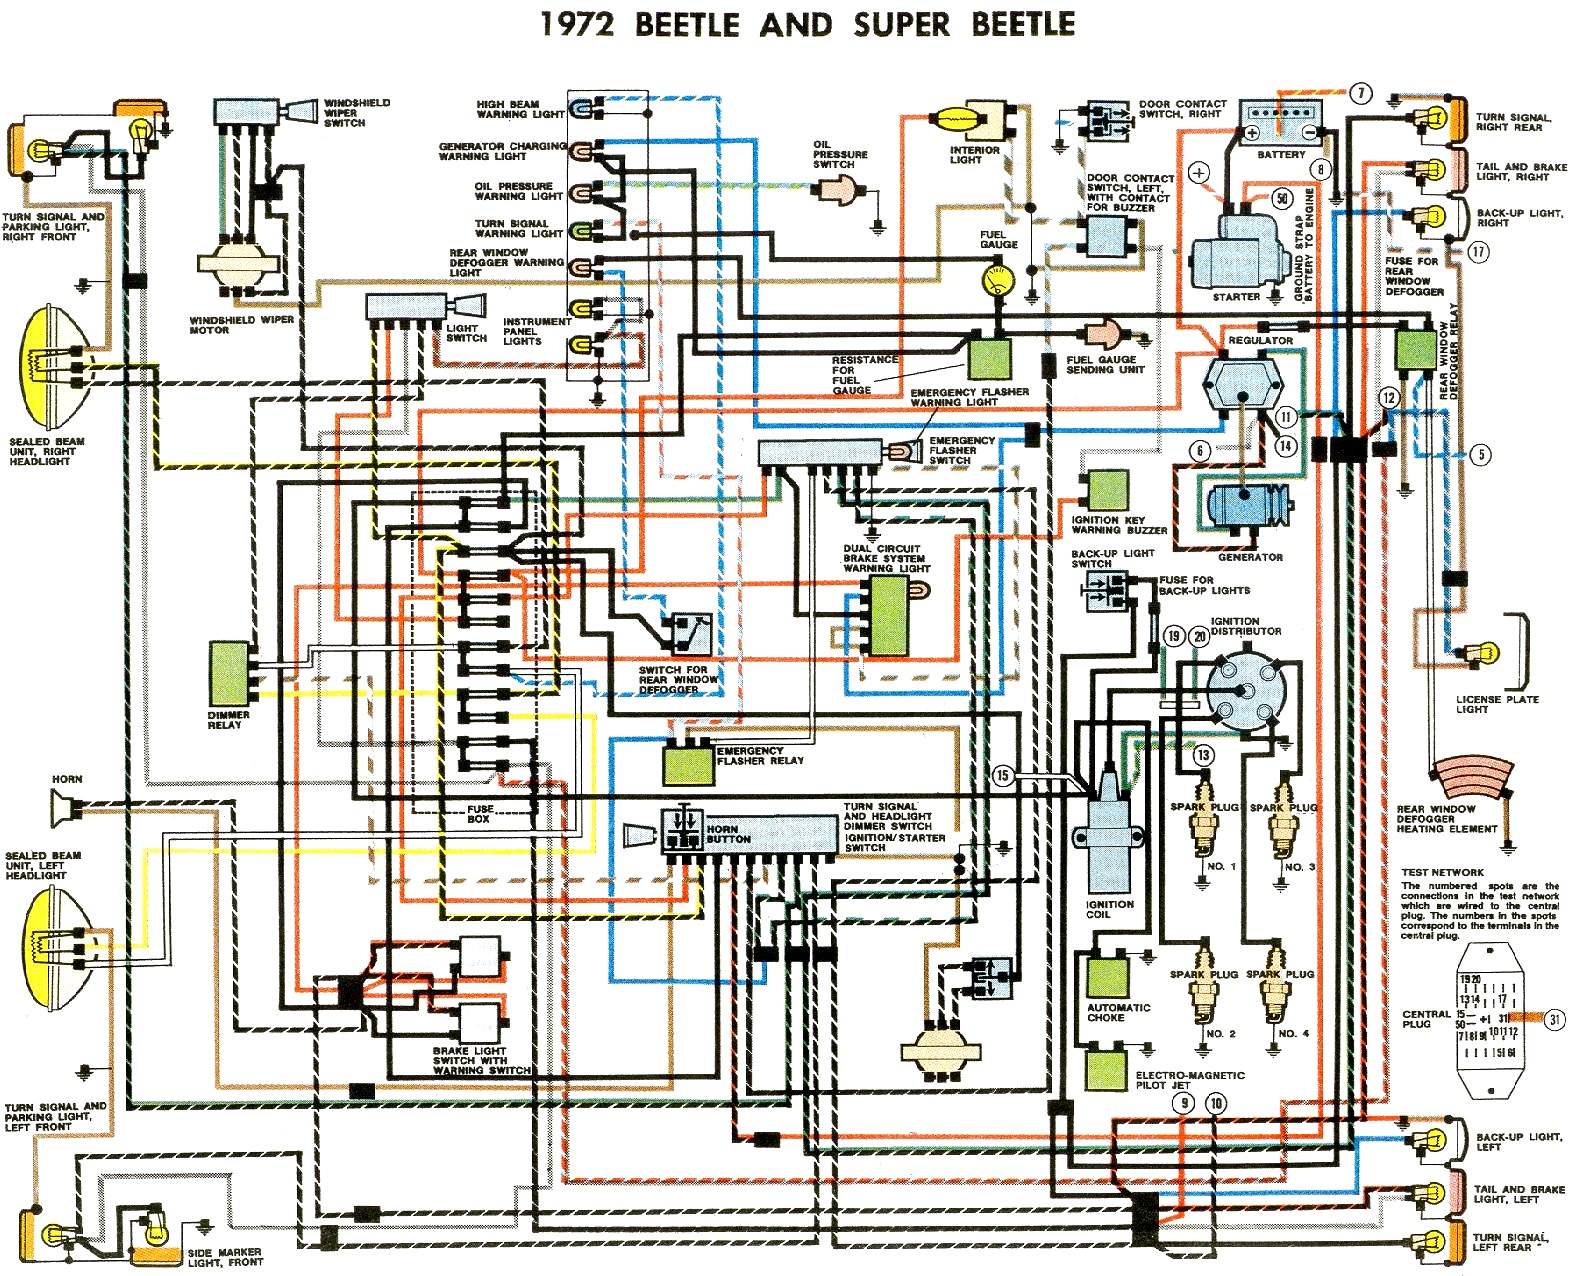 bug_72 1972 beetle wiring diagram thegoldenbug com 1974 vw beetle wiring diagram at virtualis.co